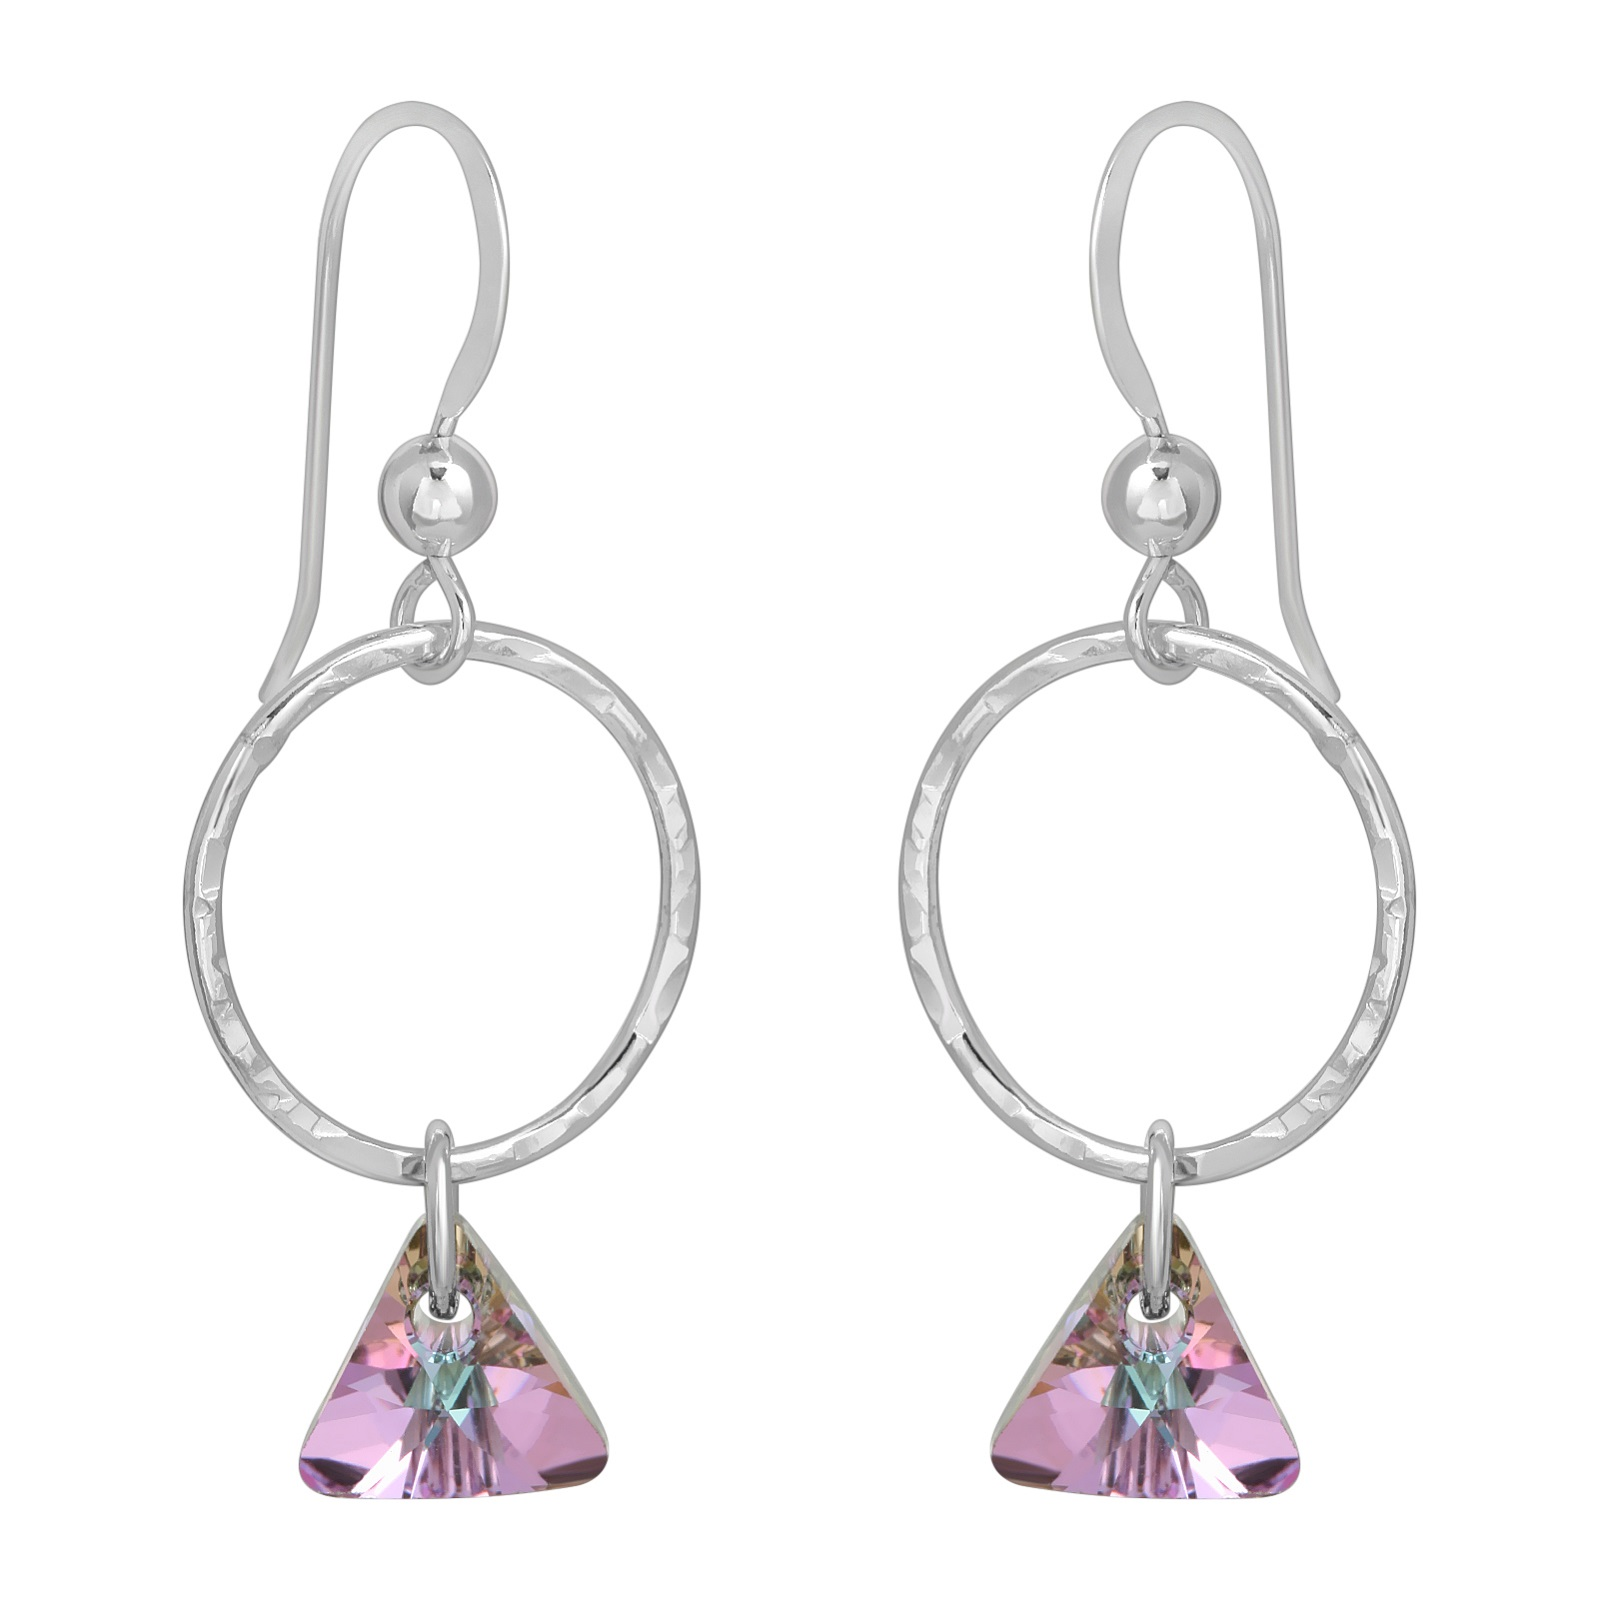 Hammered Hoop with Triangle Crystal Earrings - Vitrail Purple